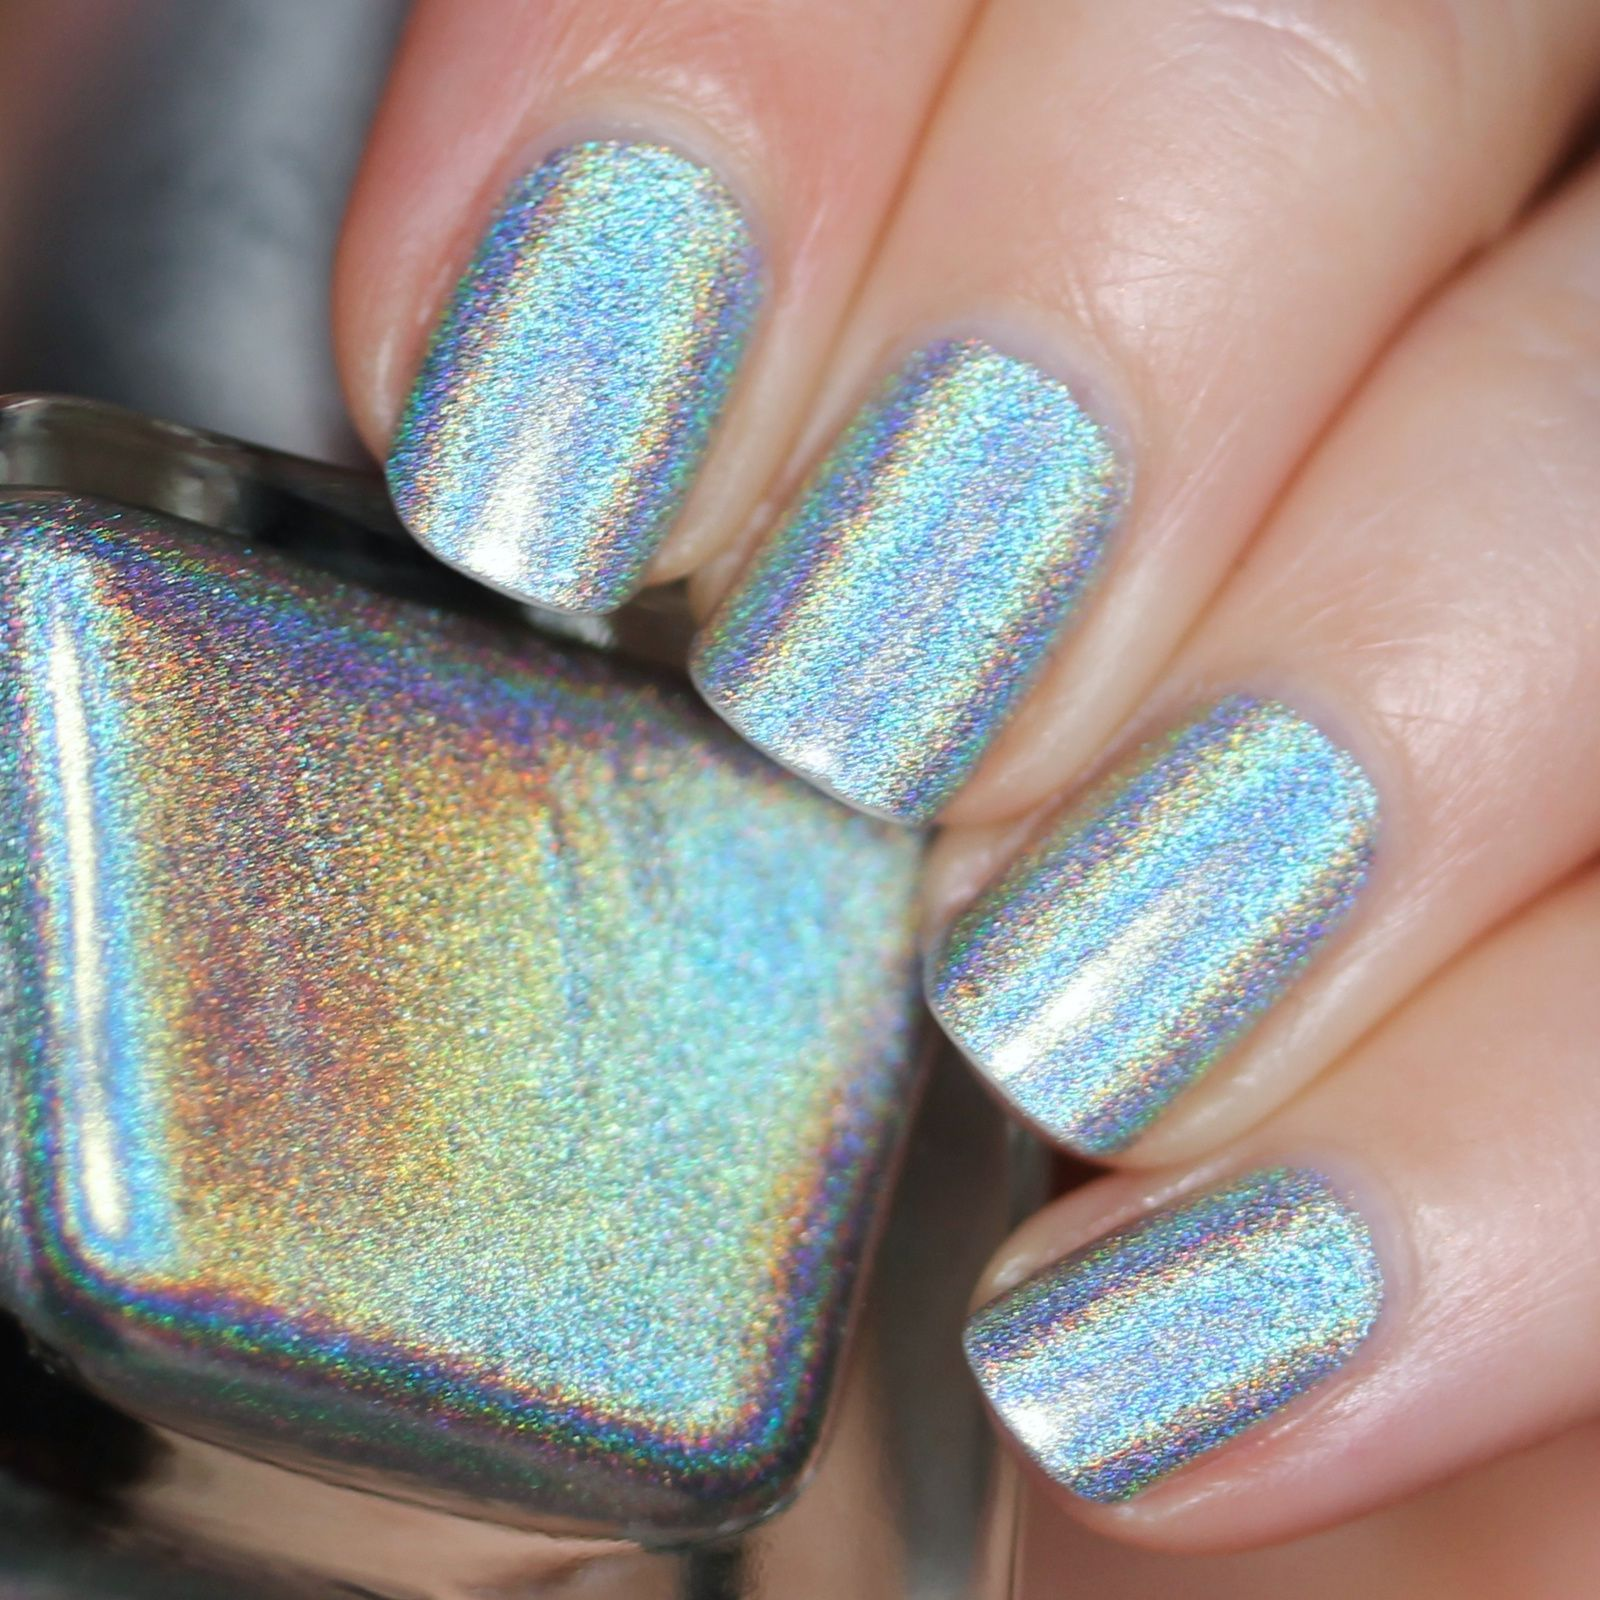 Duri Rejuvacote / Urban Outfitters Silver Holo / HK Girl Top Coat